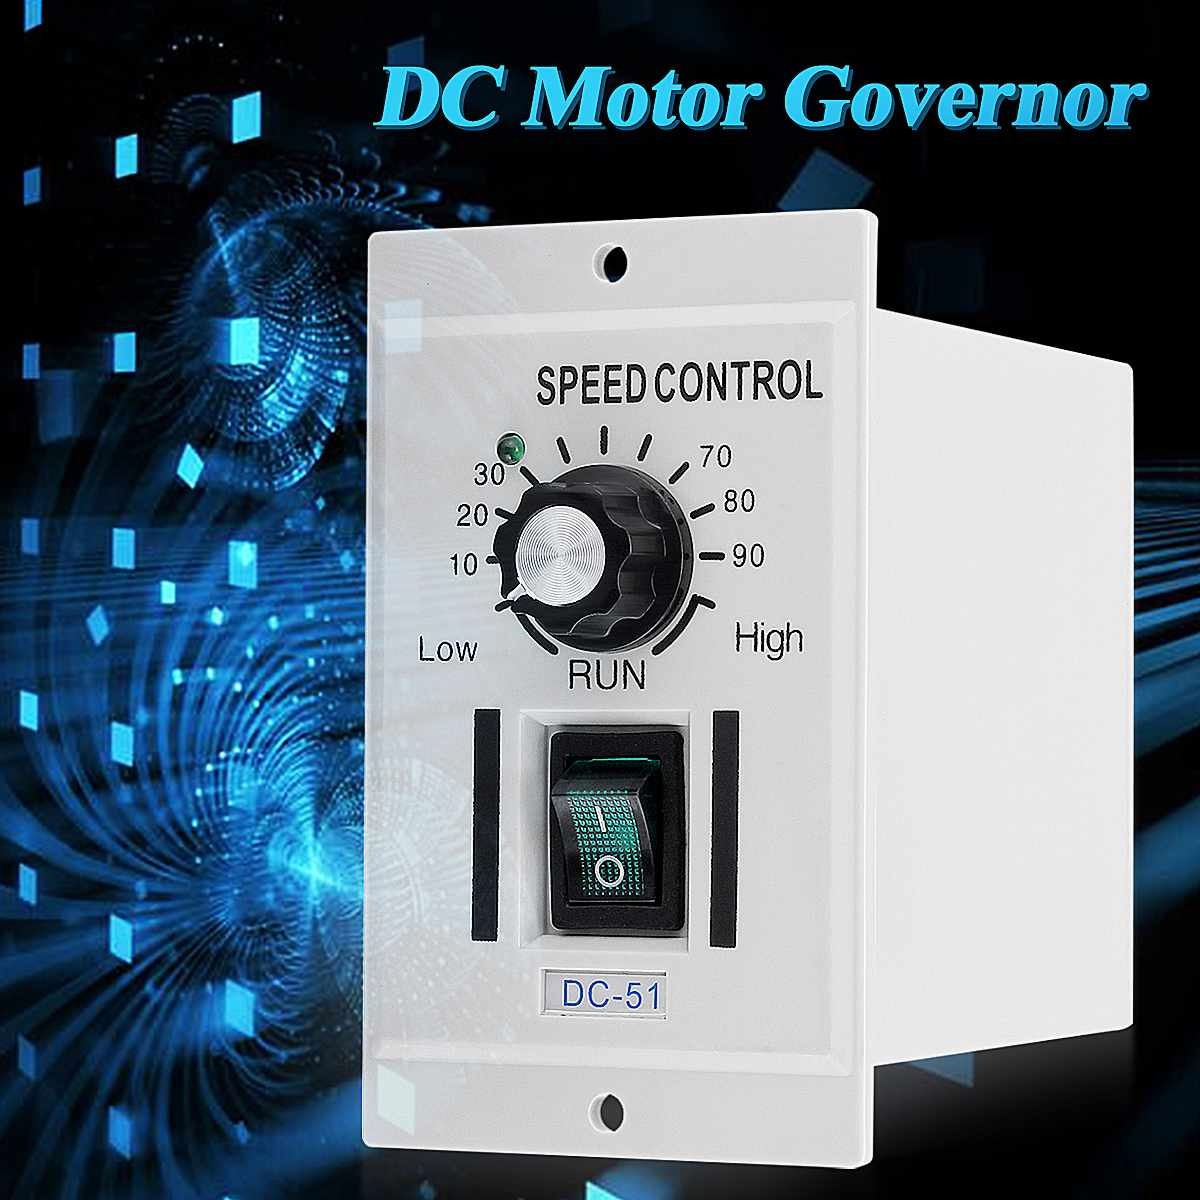 New AC 220V DC 12V Motor Speed Controller Variable Control DC 0-90V Rotary Knob Voltage Regulator Controller DC MotorNew AC 220V DC 12V Motor Speed Controller Variable Control DC 0-90V Rotary Knob Voltage Regulator Controller DC Motor